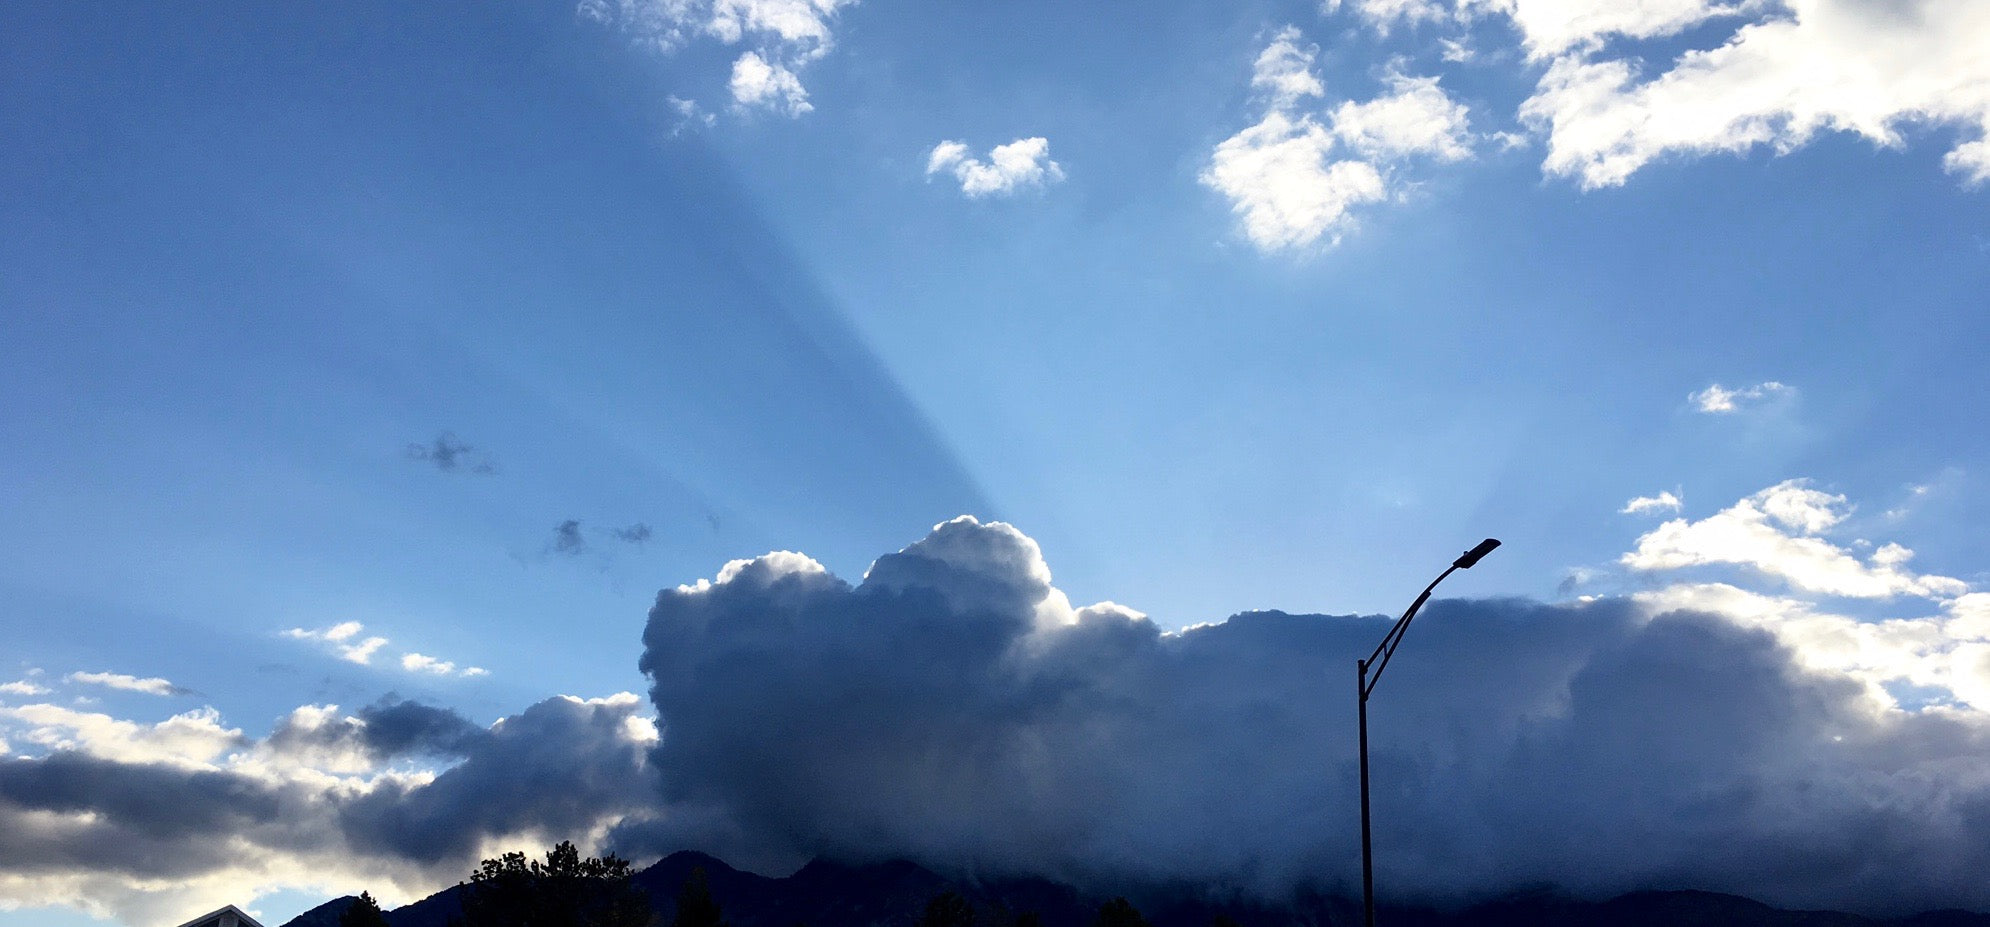 Blue Sky with sun rays, clouds, and lamp post